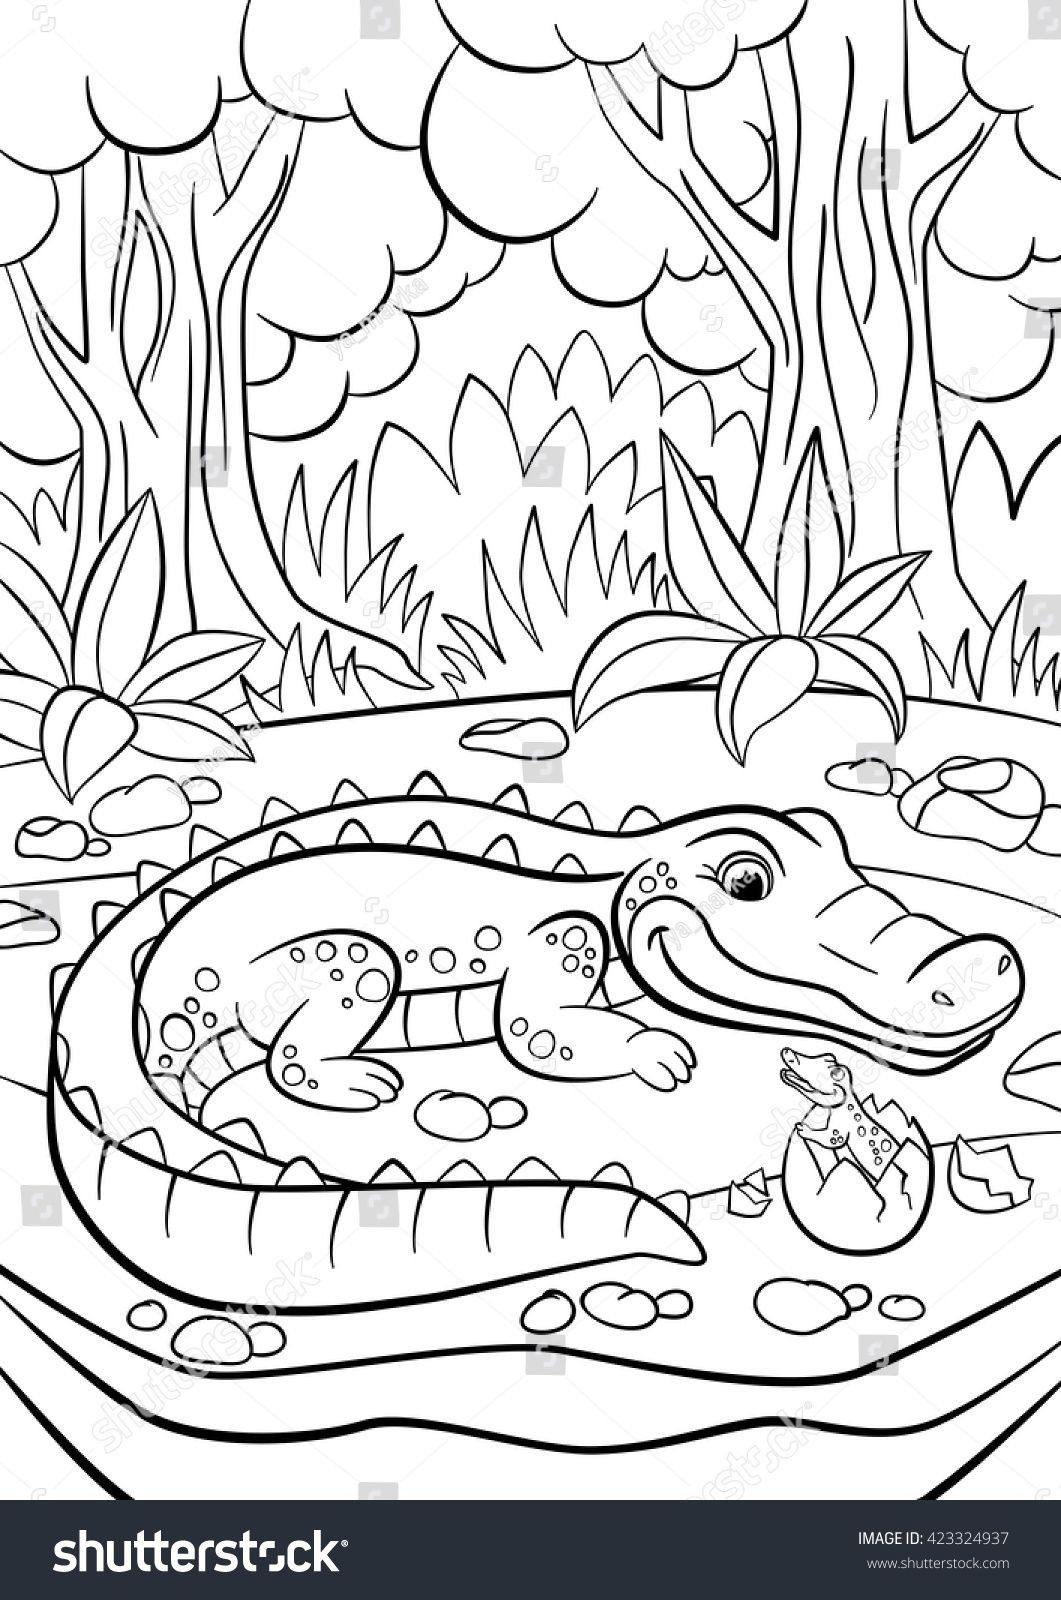 Cute Alligator Coloring Pages Coloring Pages Animals Mother Alligator Looks At Her In 2020 Coloring Pages Jesus Coloring Pages Cute Coloring Pages